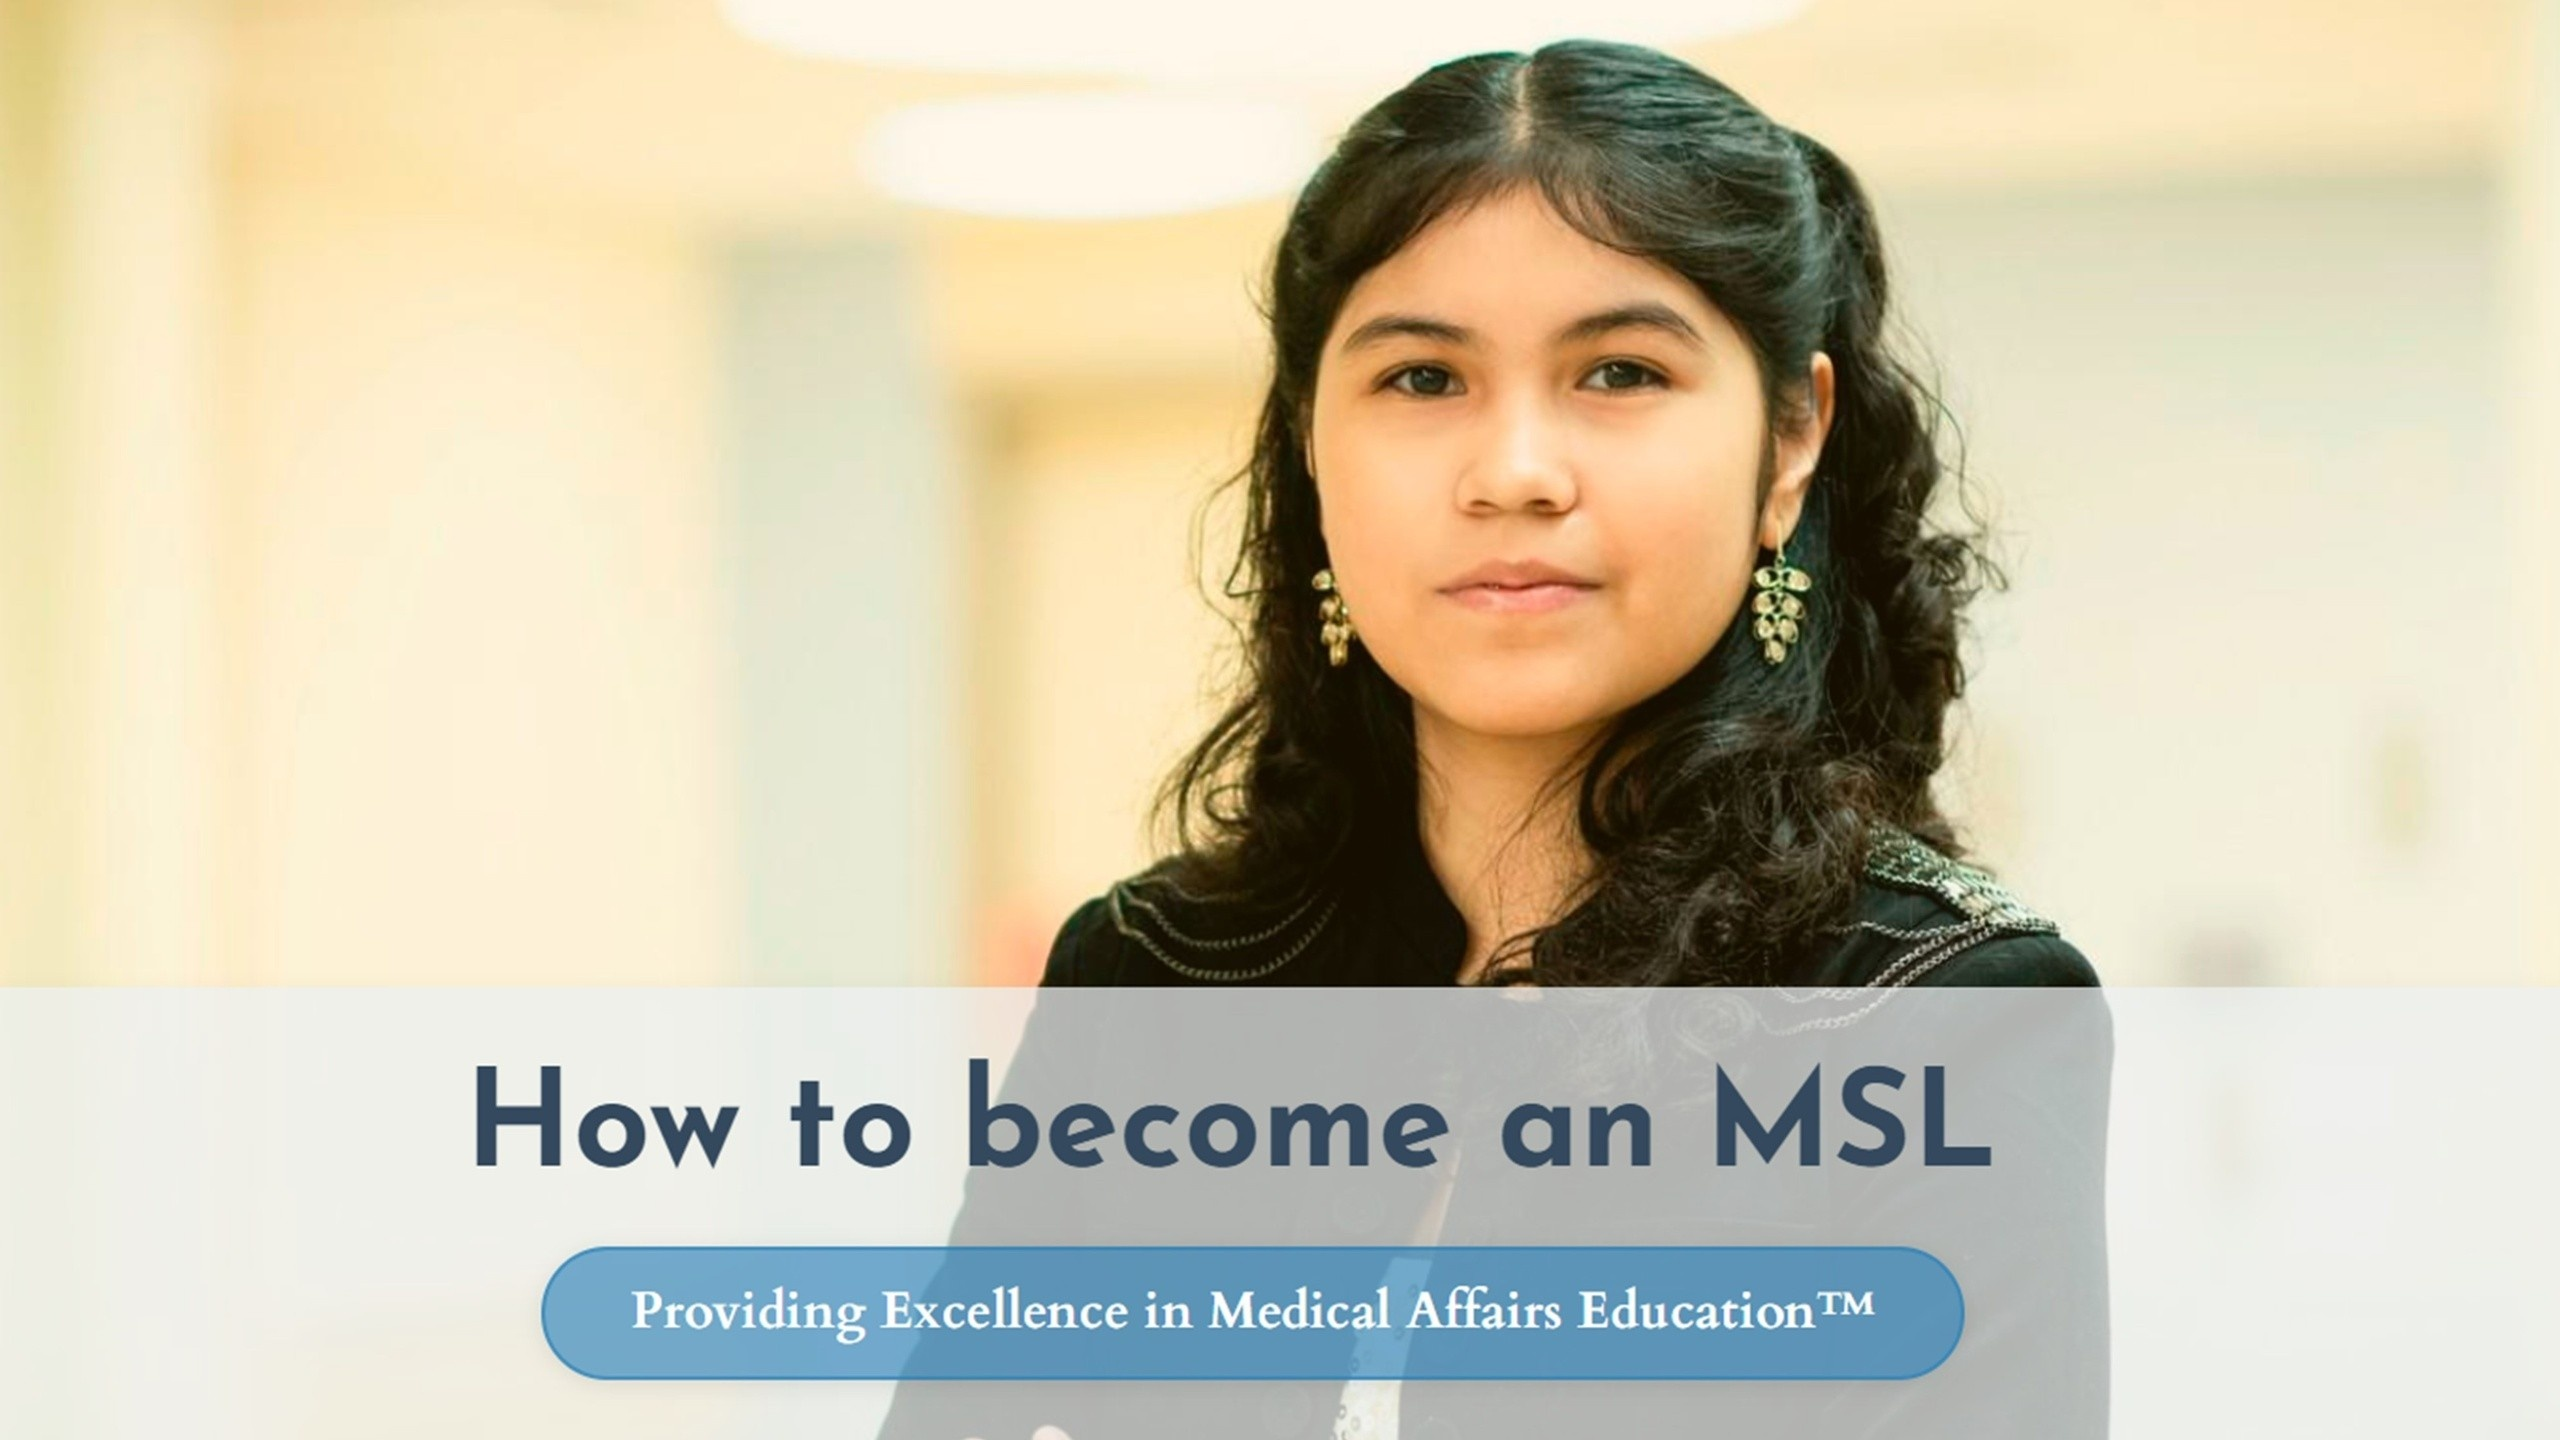 How to become an MSL